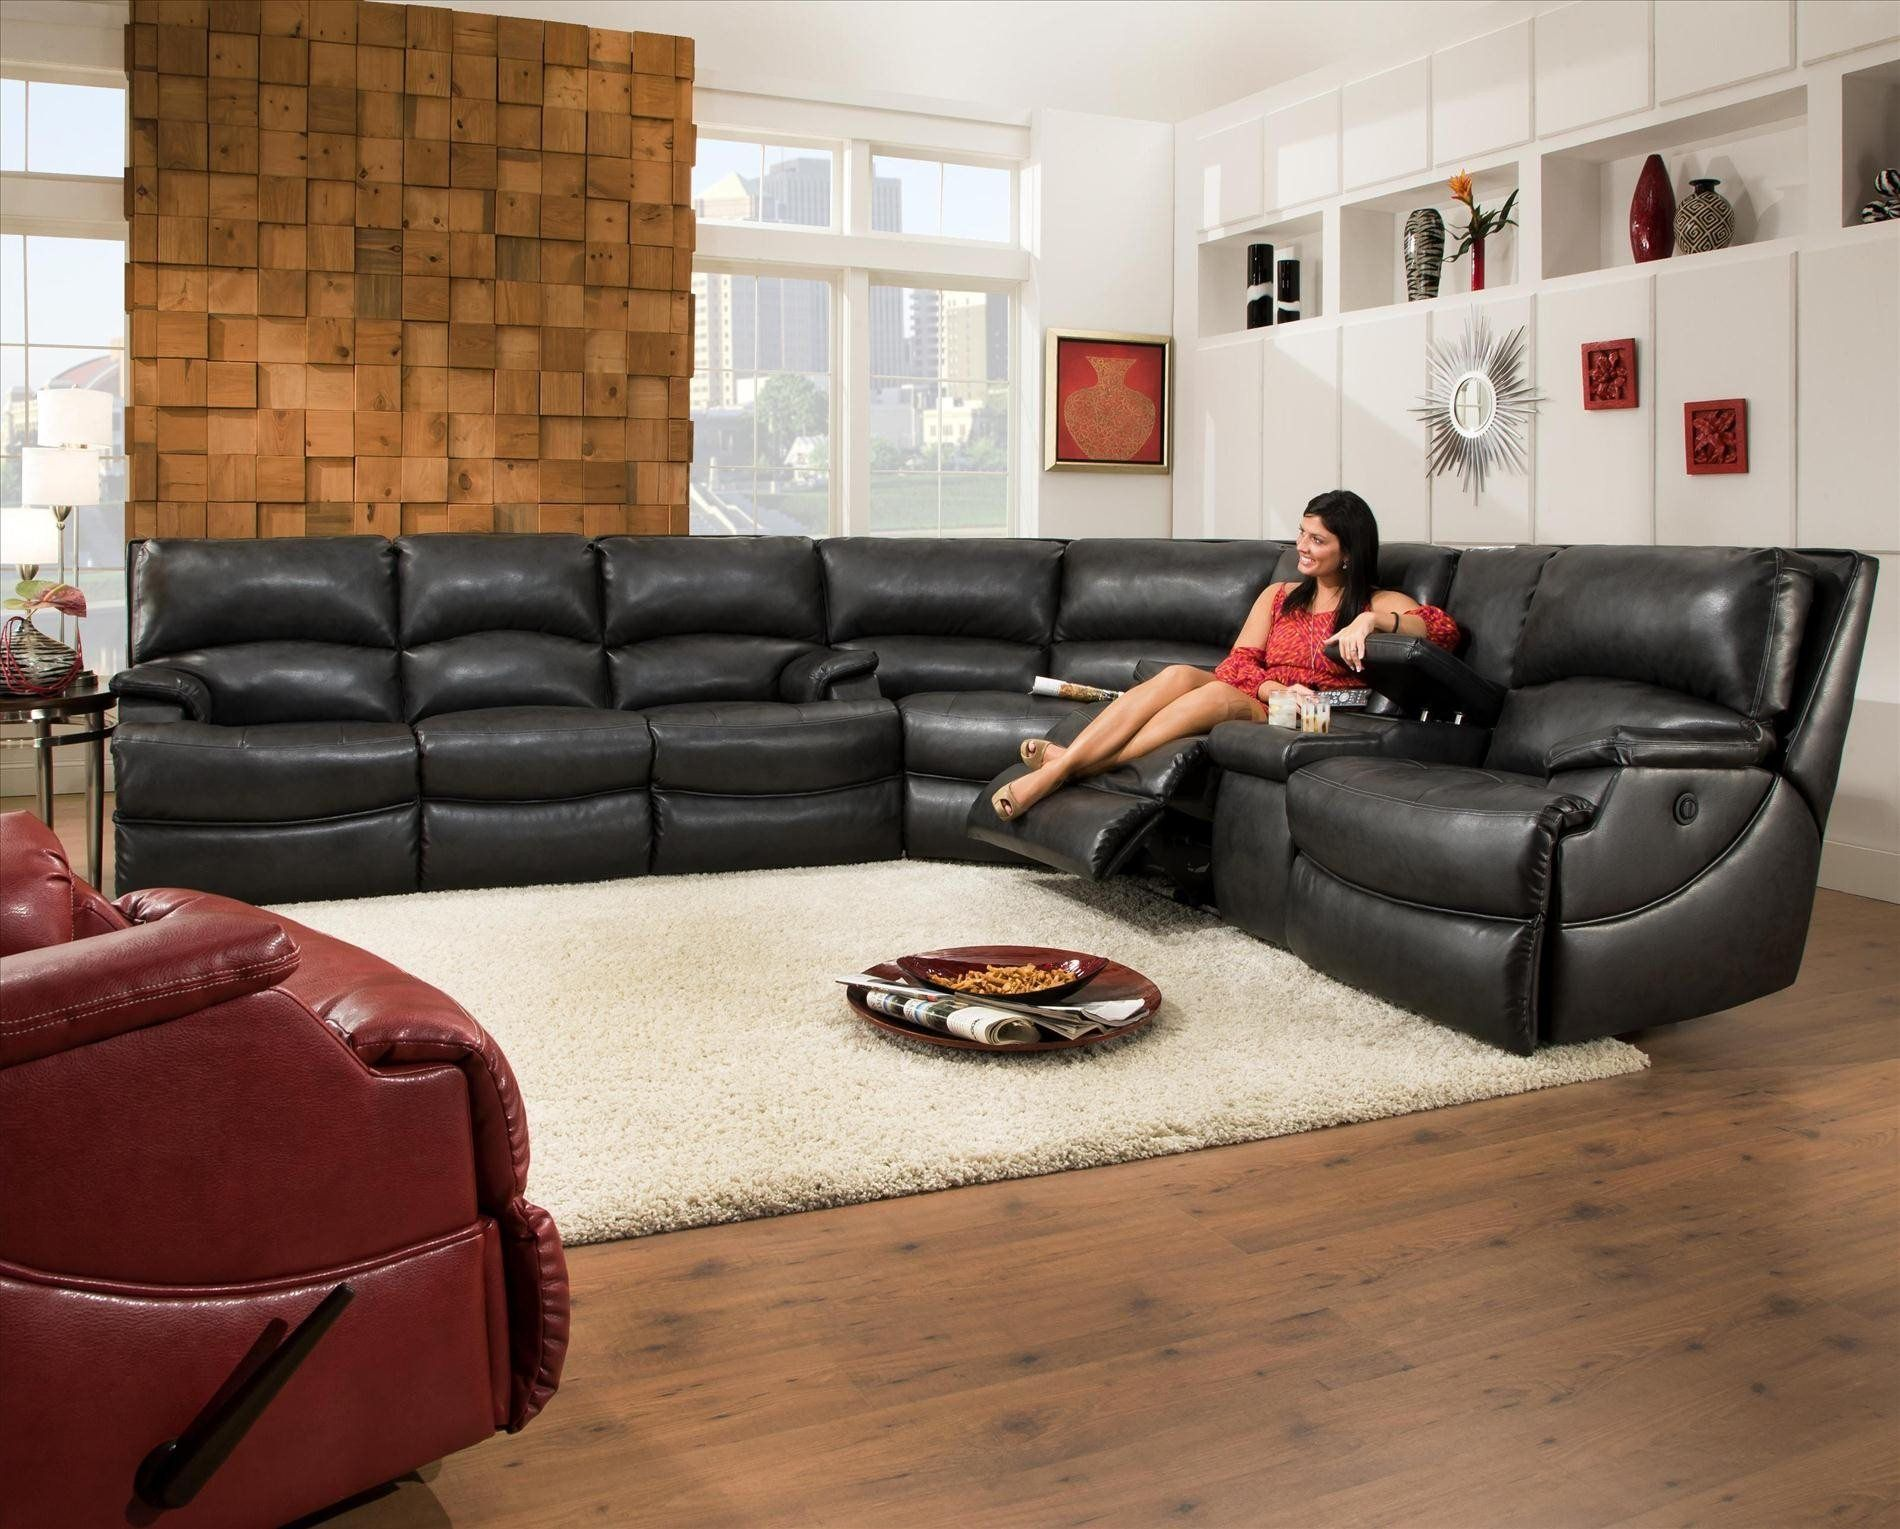 Sectional sofas with recliners hauzdesign